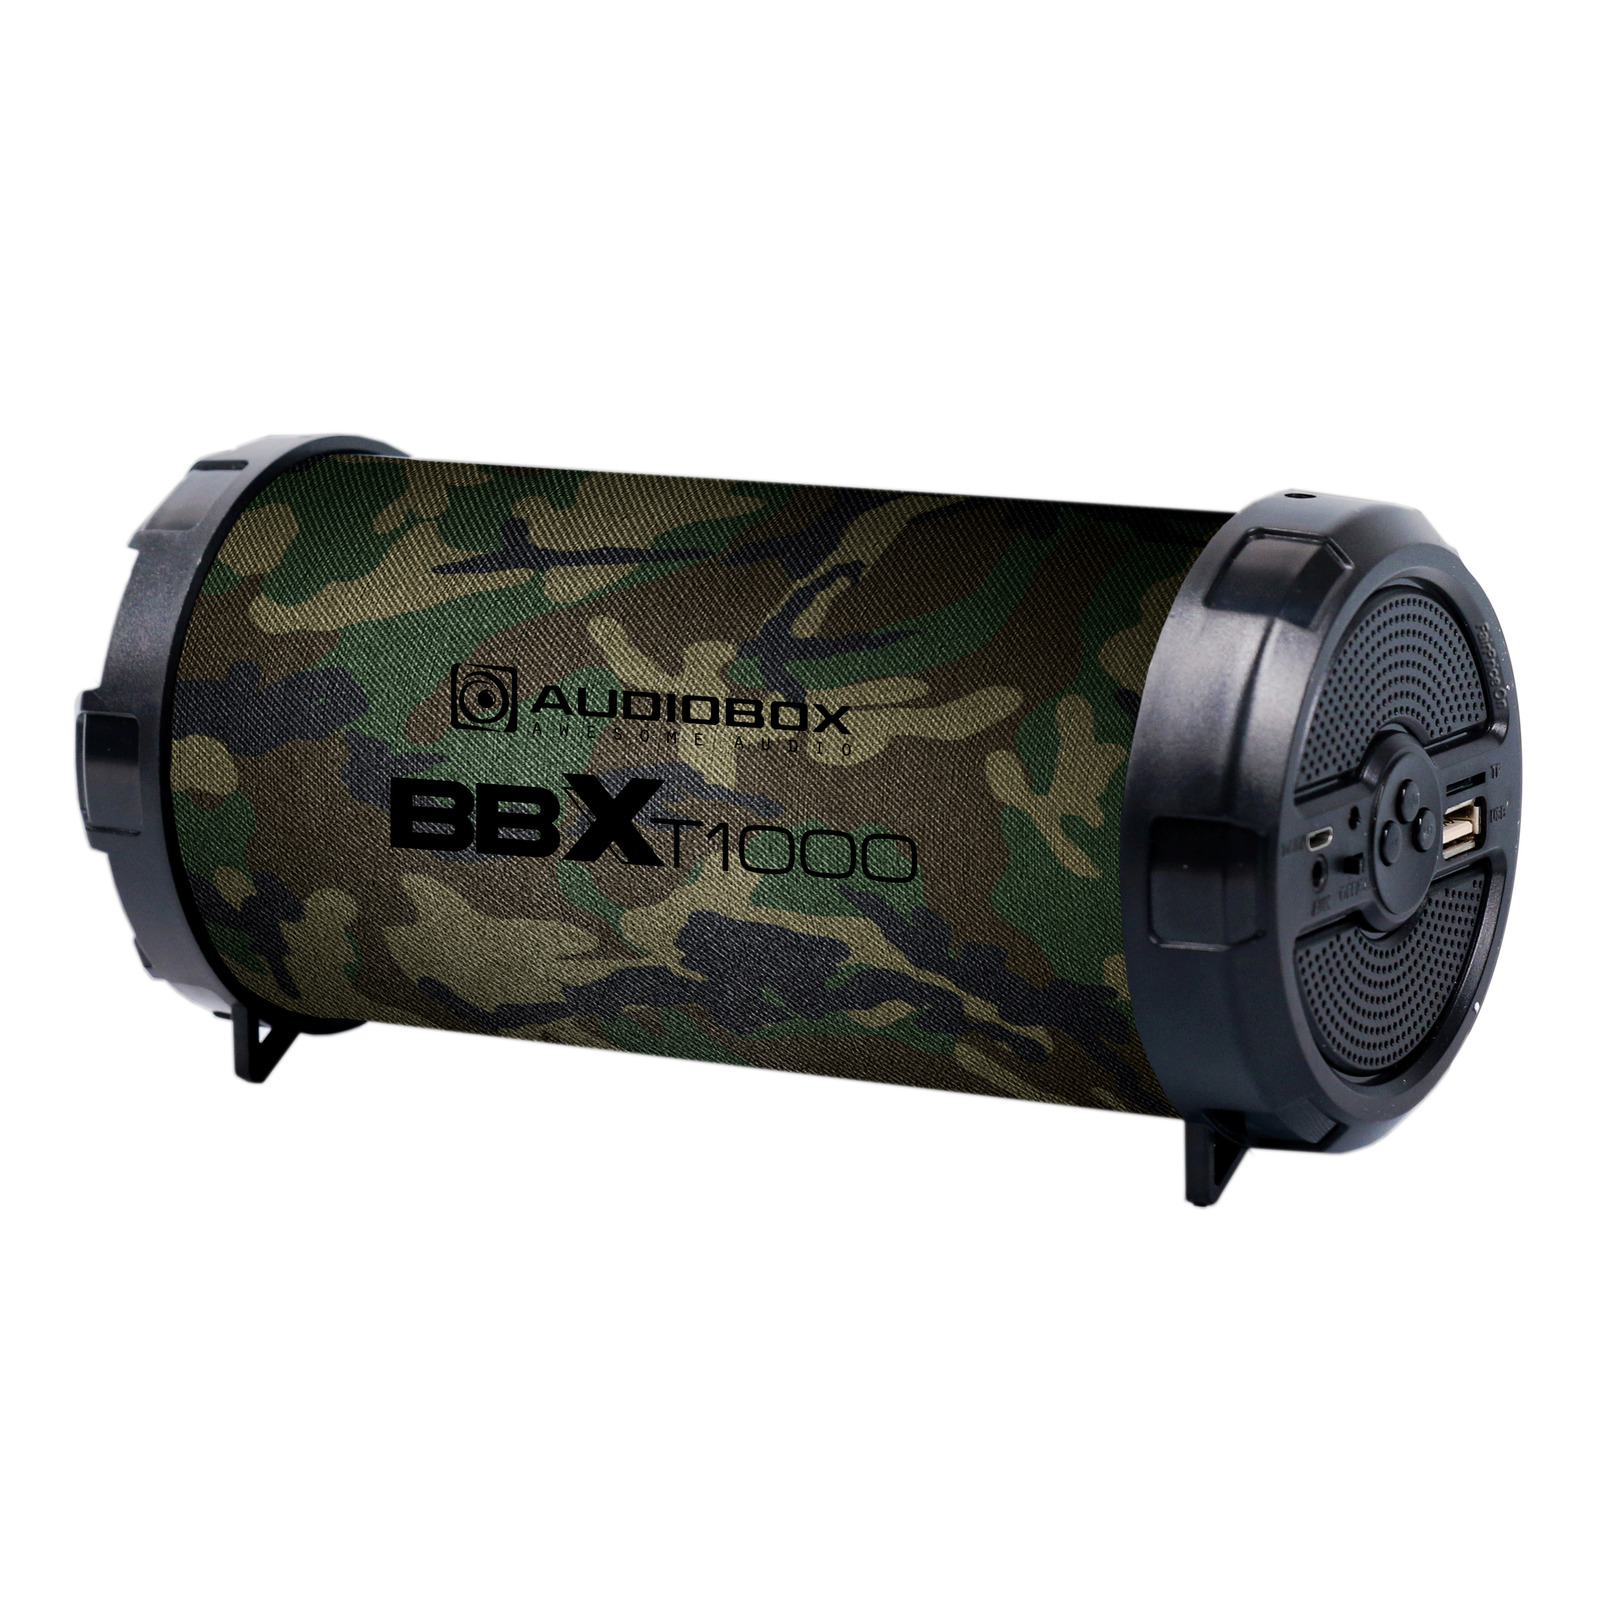 Audiobox BBXT1000 Bluetooth Speaker - Camo